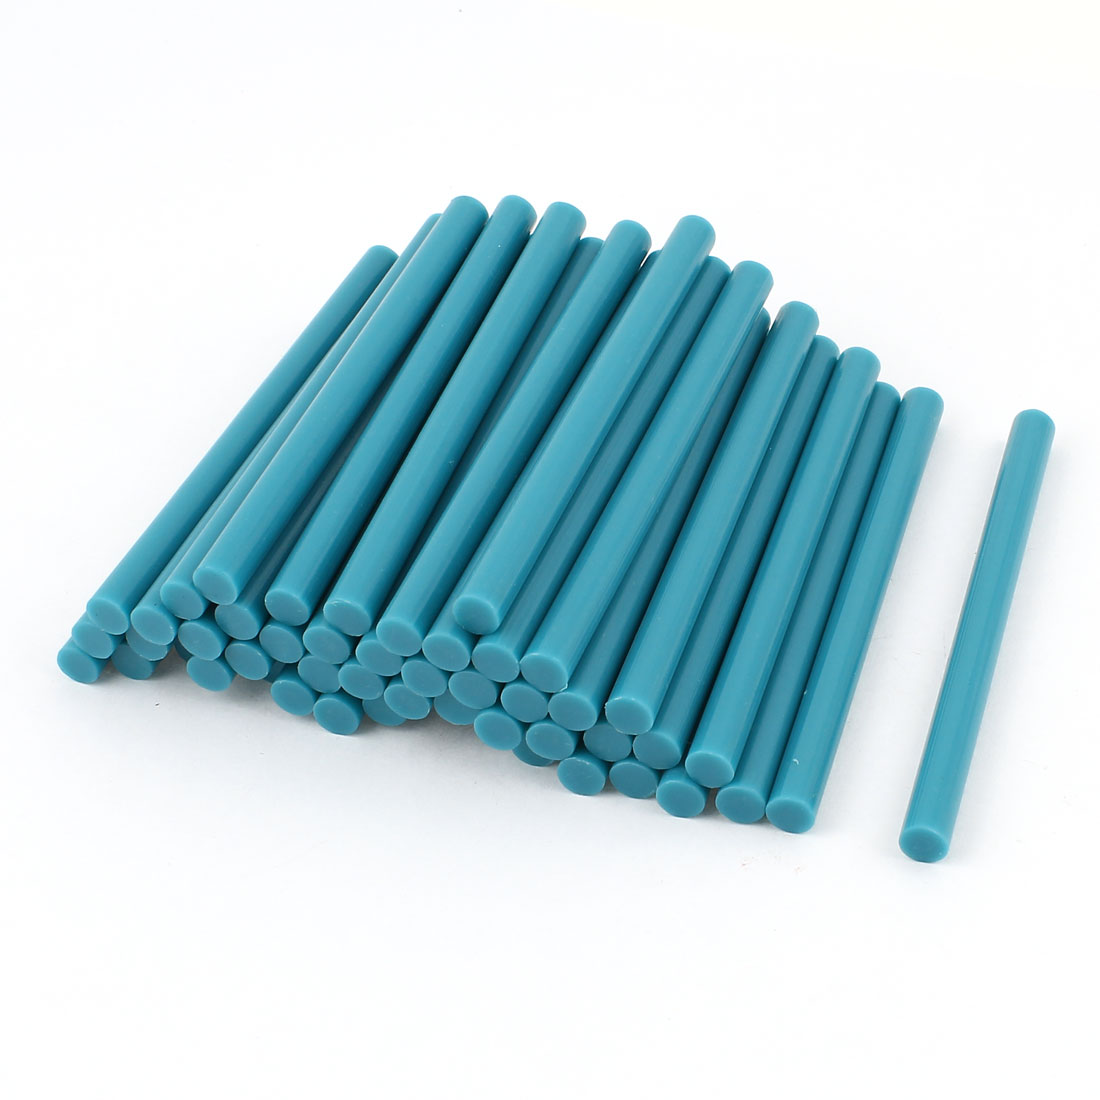 50 Pcs Teal Blue Hot Melt Glue Gun Adhesive Sticks 7mm x 100mm